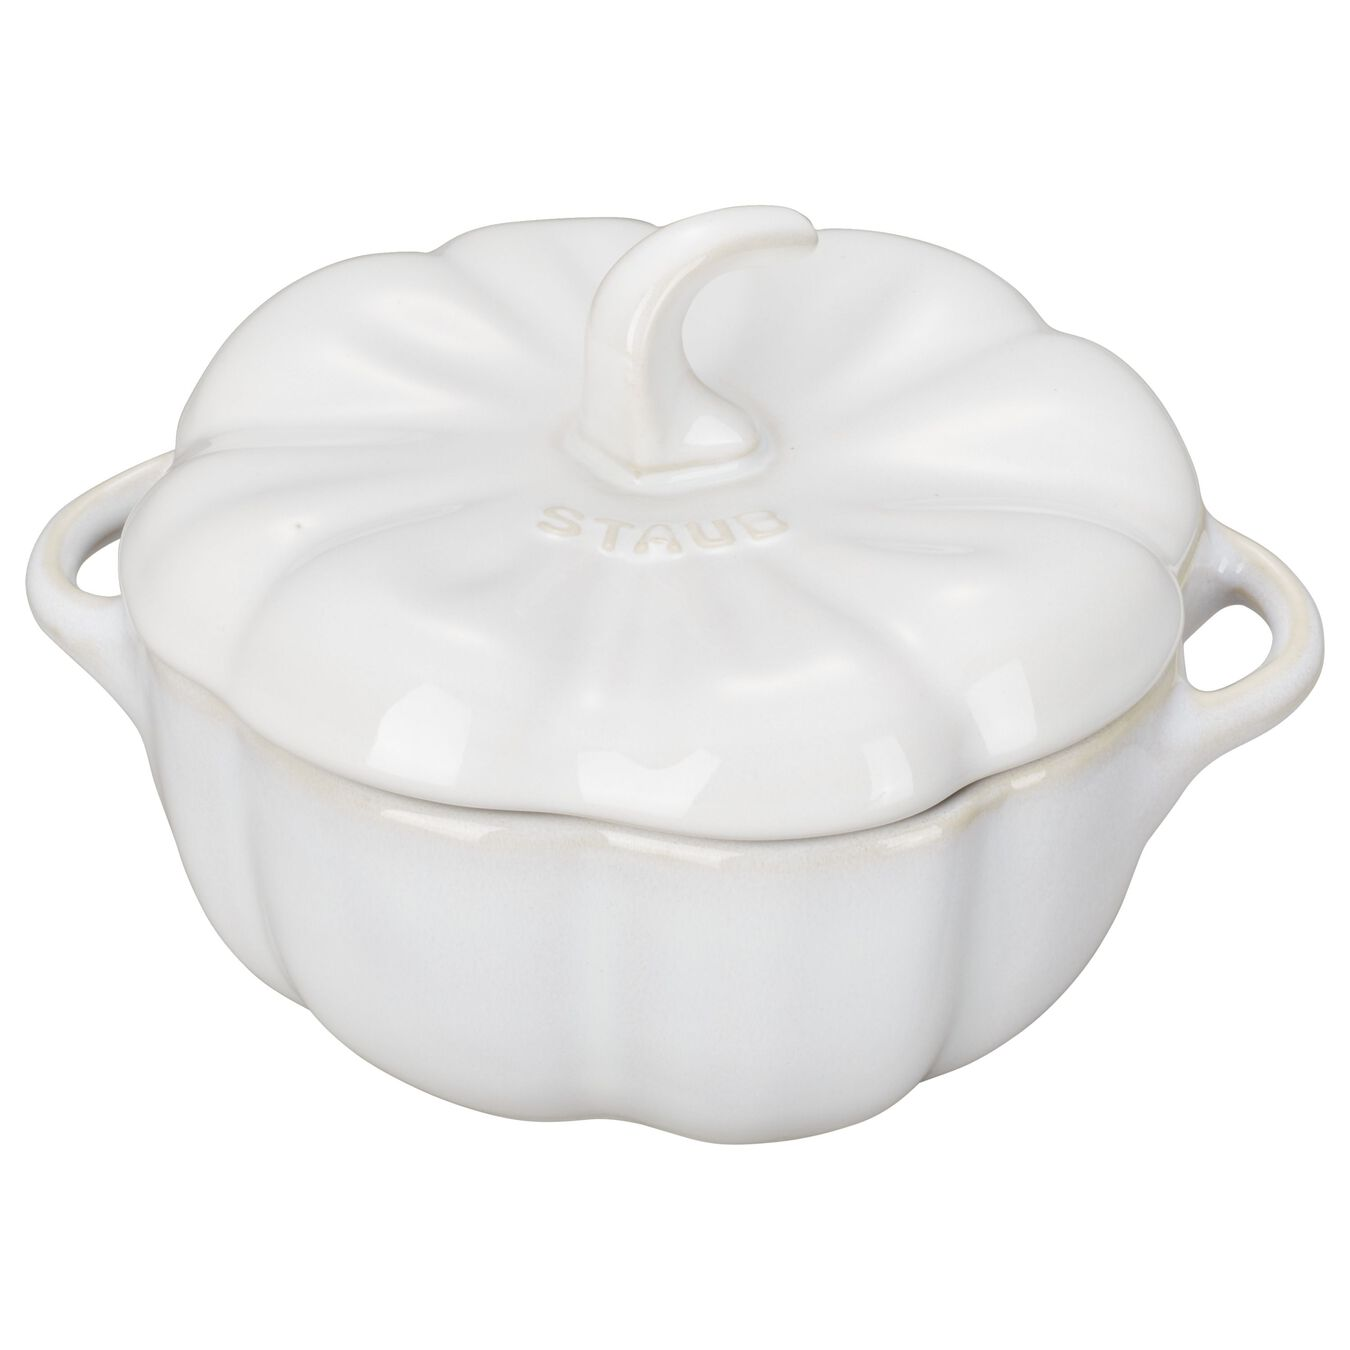 475 ml Ceramic Special shape Cocotte, Ivory-White,,large 1